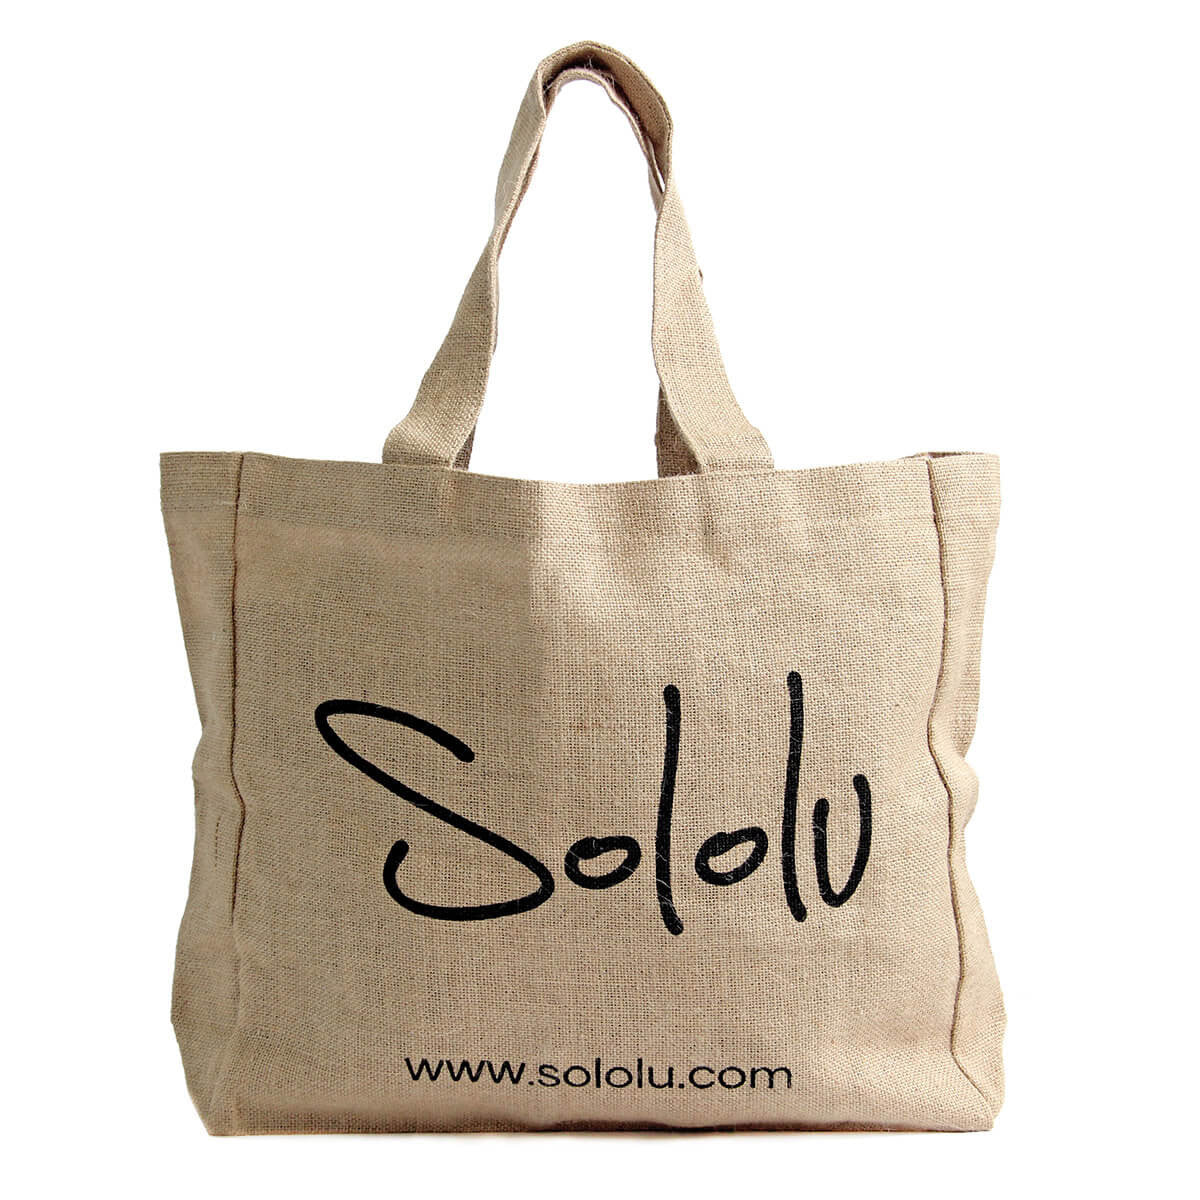 An Ethical, Seasonless Clothing Collection for Women on the Go - Sololu Jute Tote Bag, Sololu